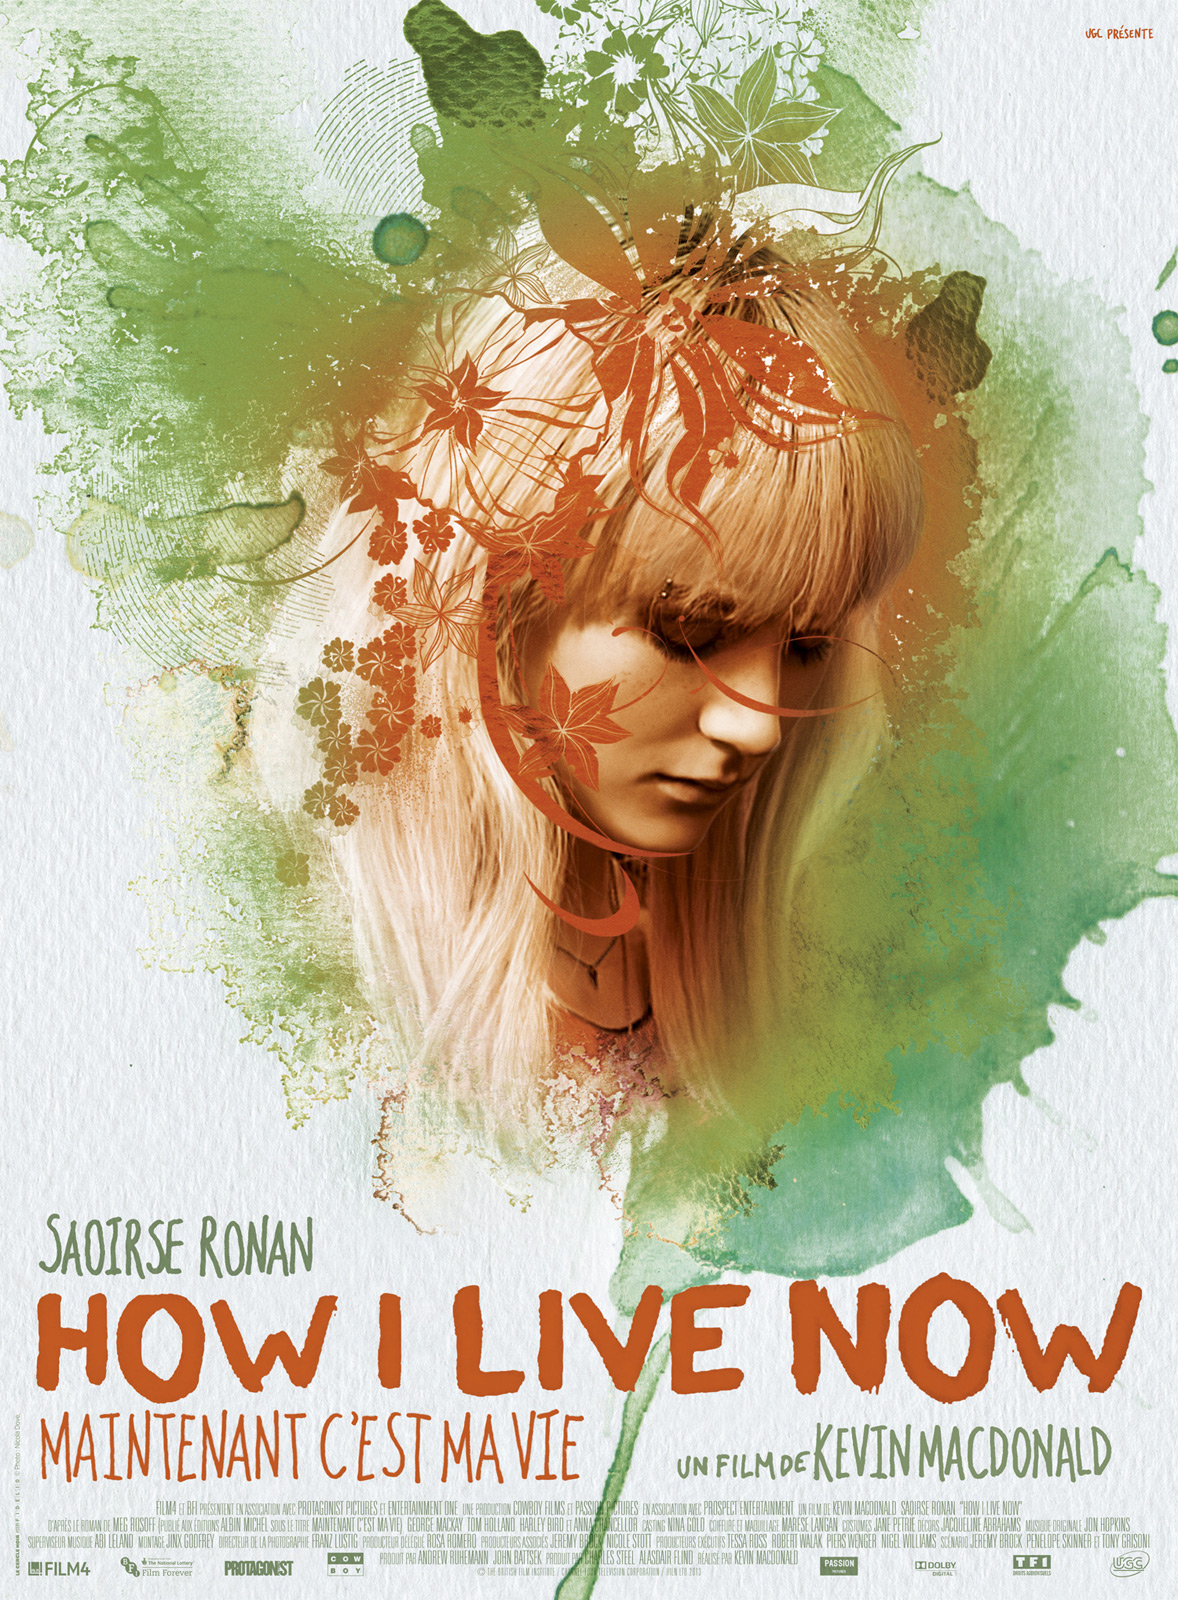 How I Live Now [HDRIP.VOSTFR] dvdrip